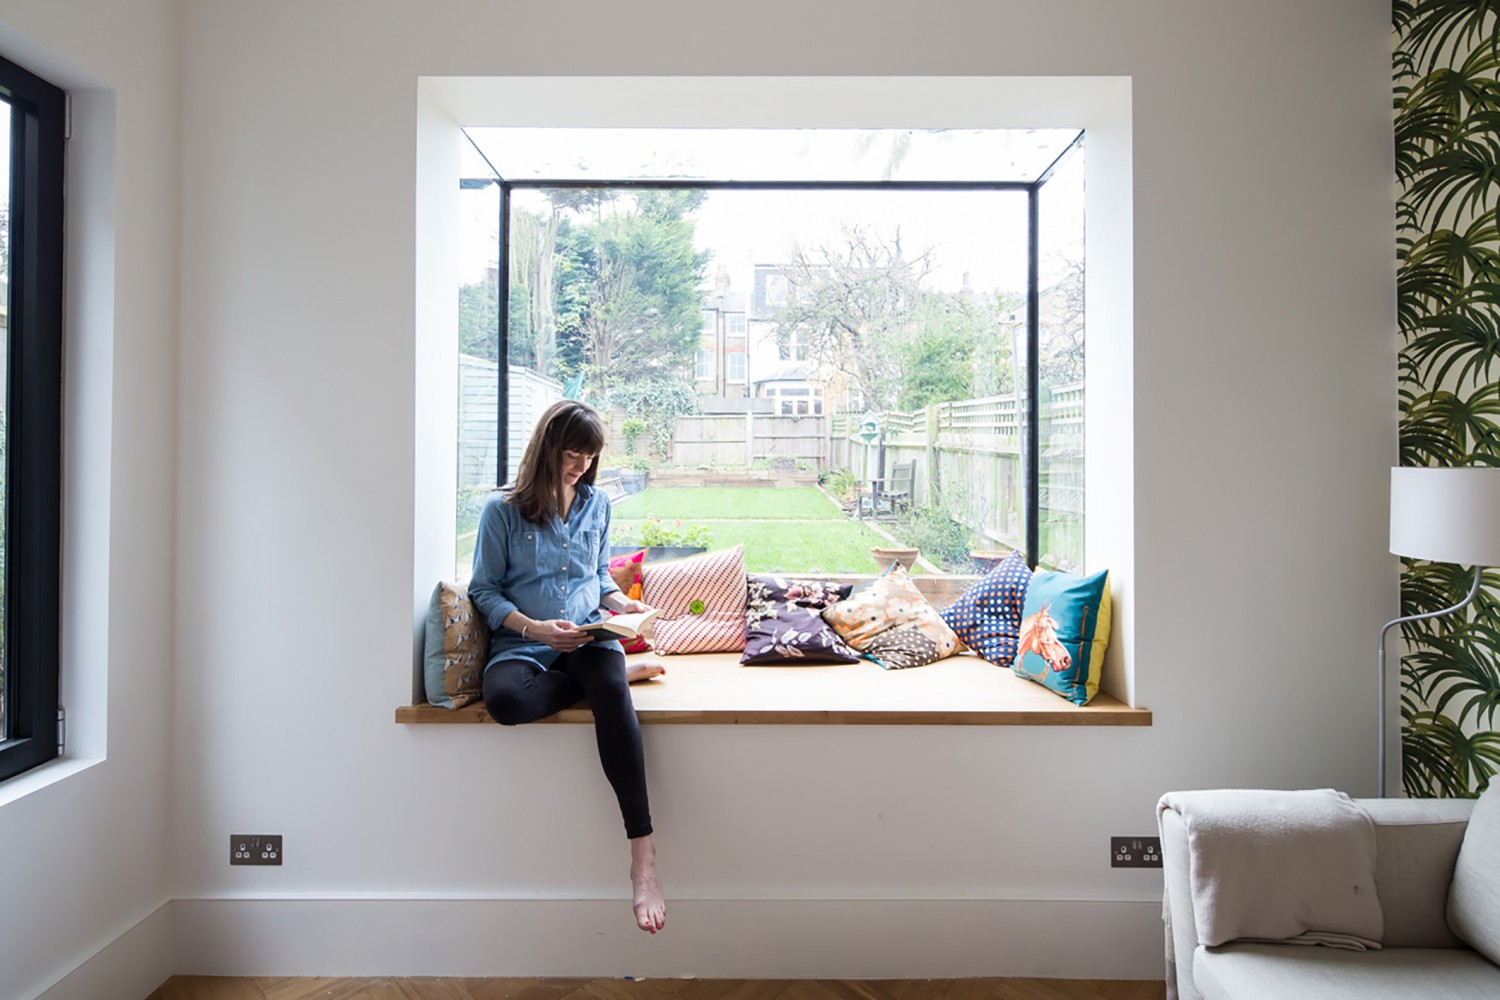 peter morris architects - Fens House_S8A7581